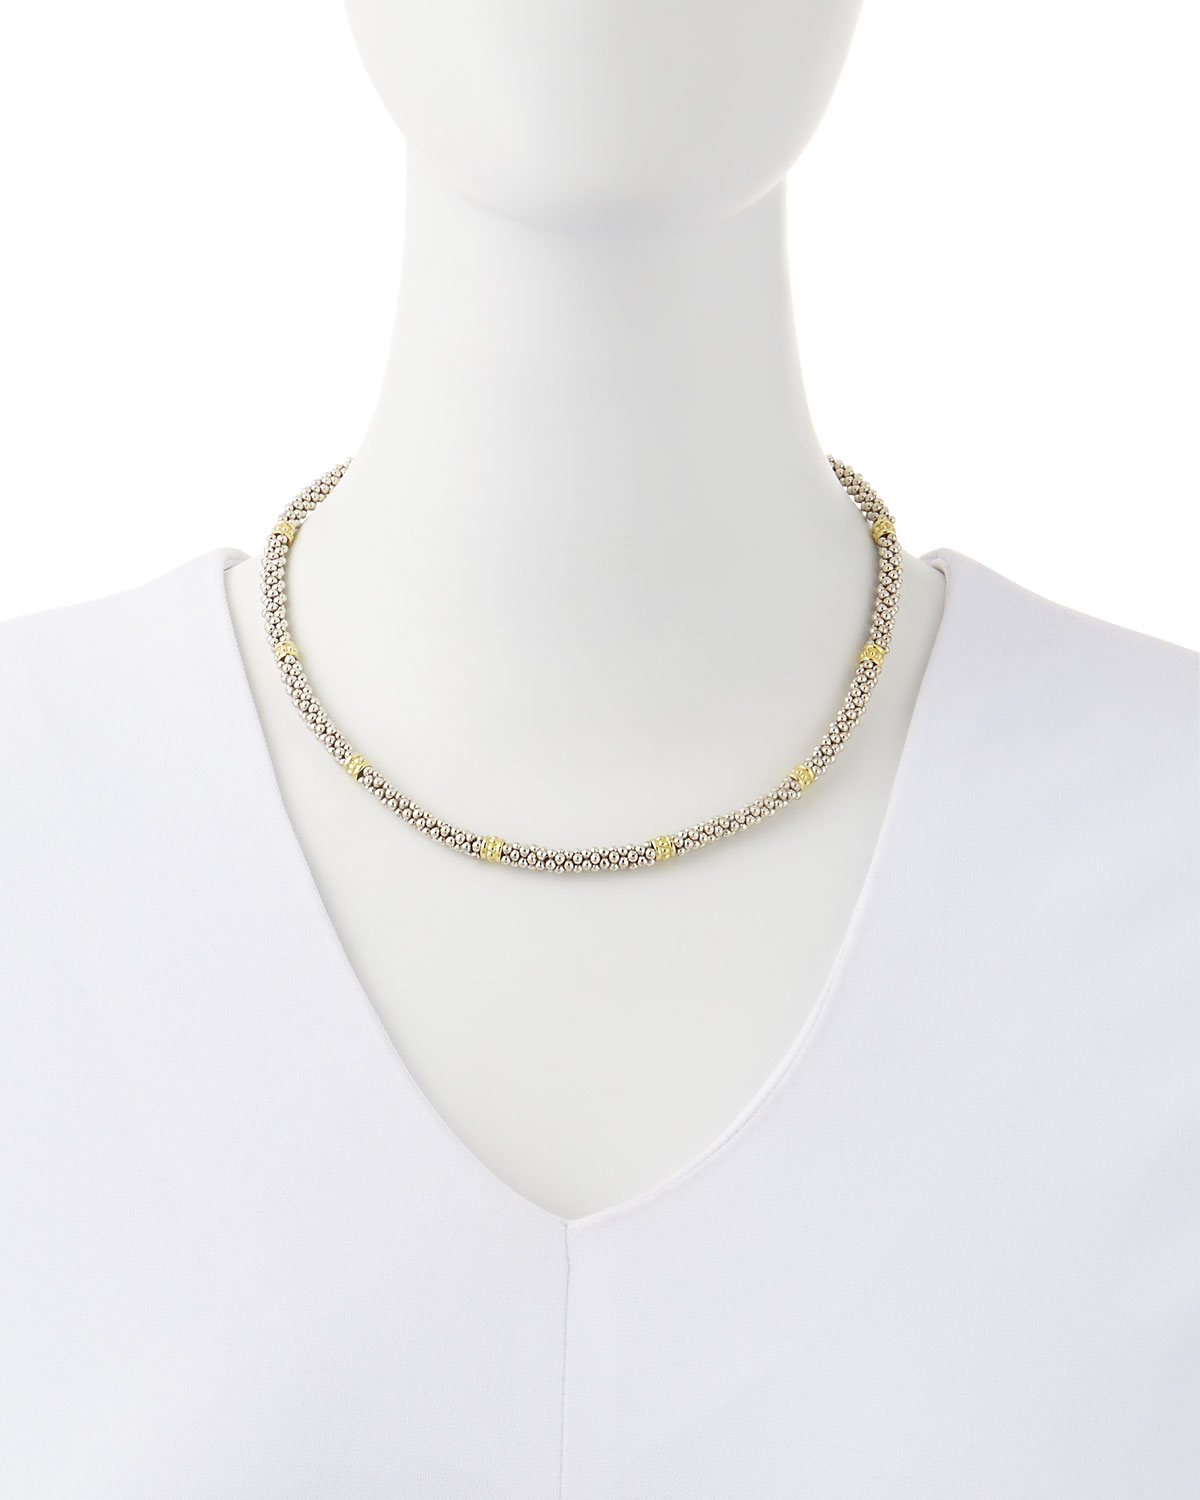 Lyst lagos signature caviar necklace in metallic gallery mozeypictures Images